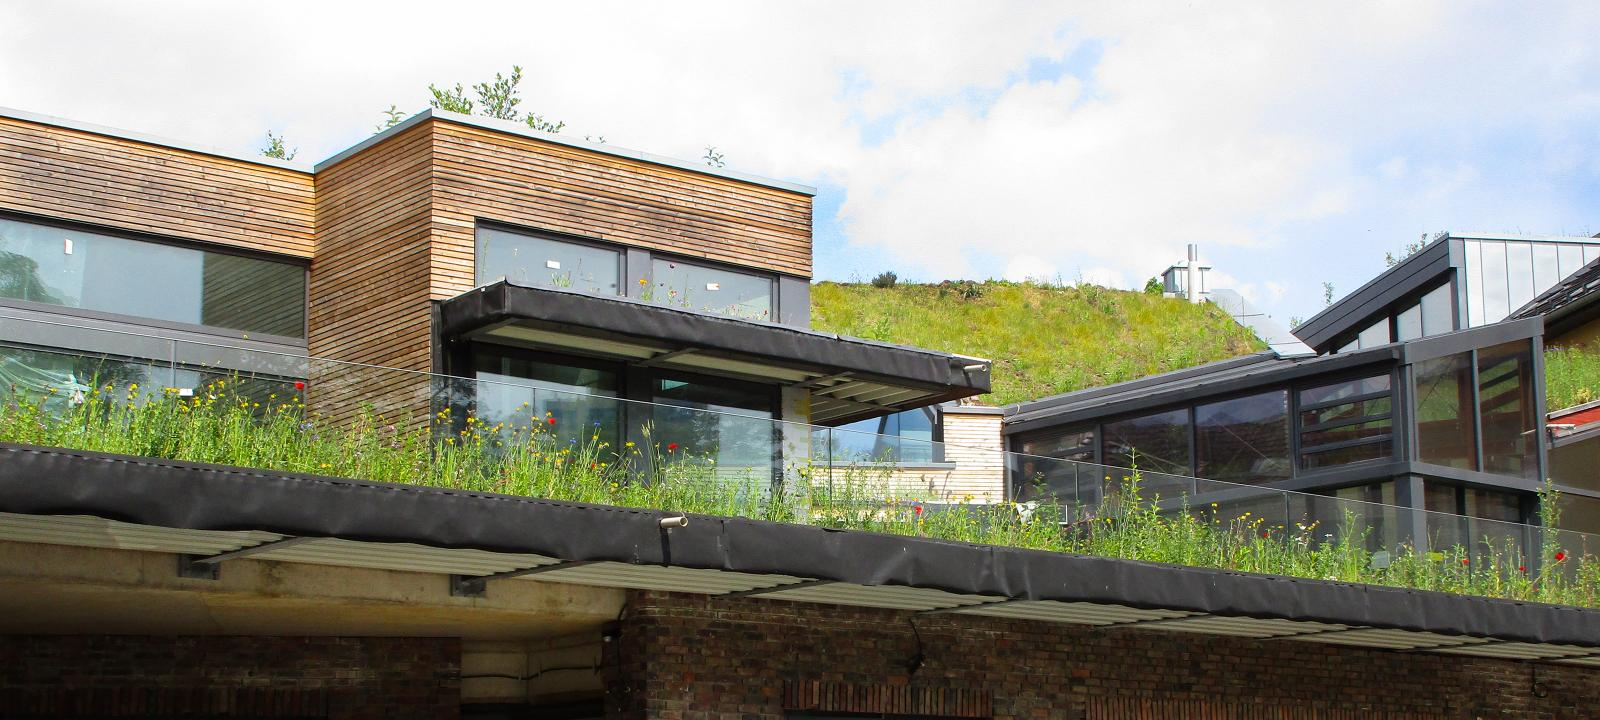 Pitched green roof and a meadow on a flat roof